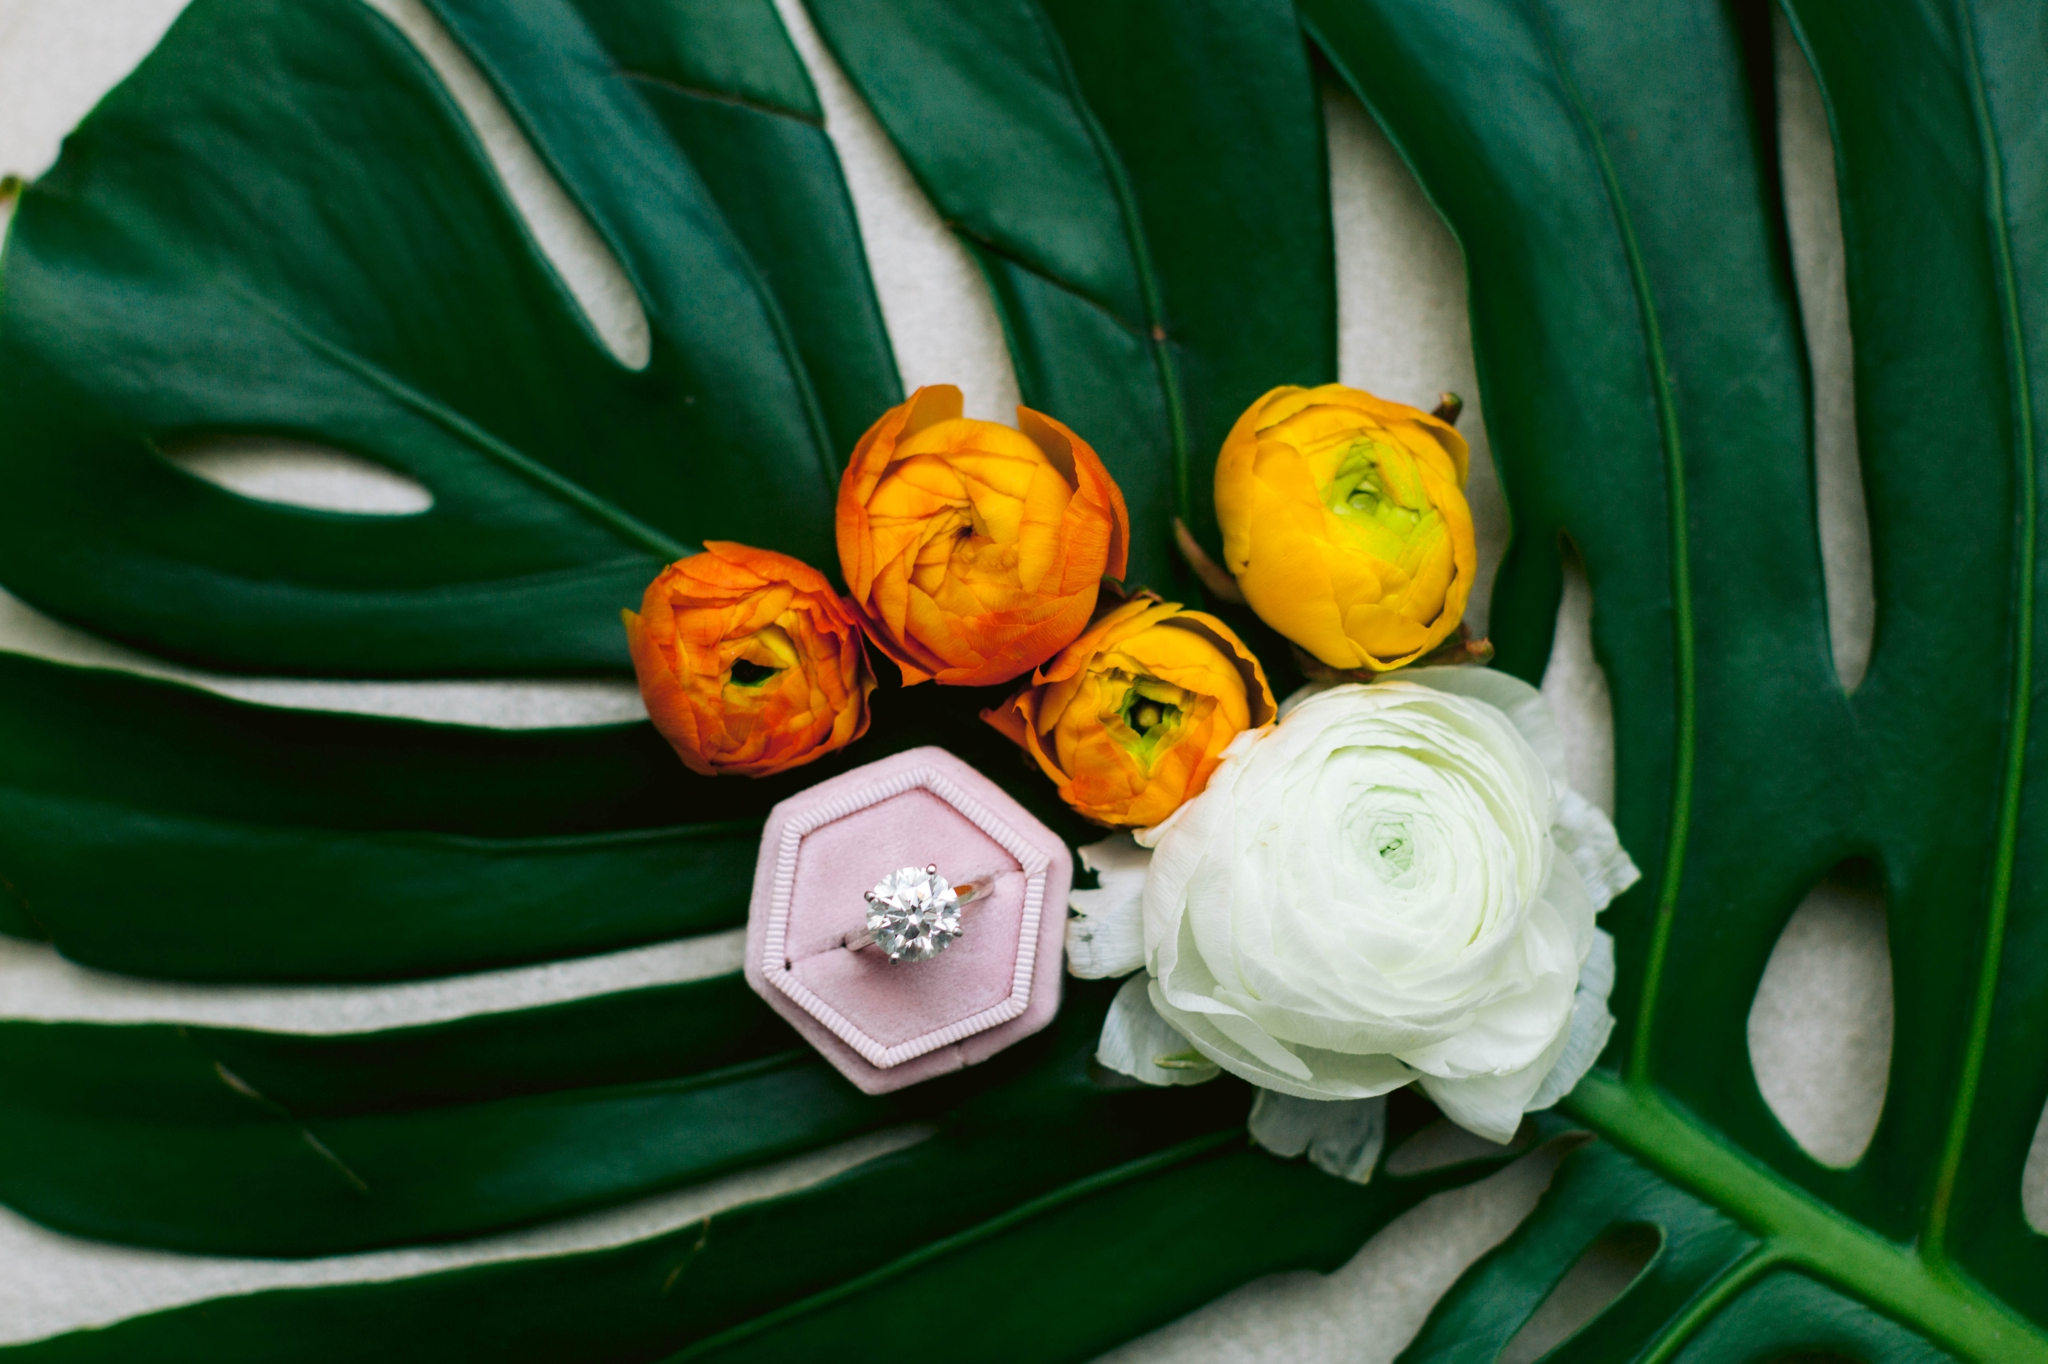 Huge Diamond Ring with a tropical leave and orange peonies  for your Hawaii Wedding - Navy, Green, Gold and Berry colored Tropical Wedding Inspiration for your Wedding in Hawaii! - Honolulu, Oahu, Hawaii Photographer - Fine Art Film